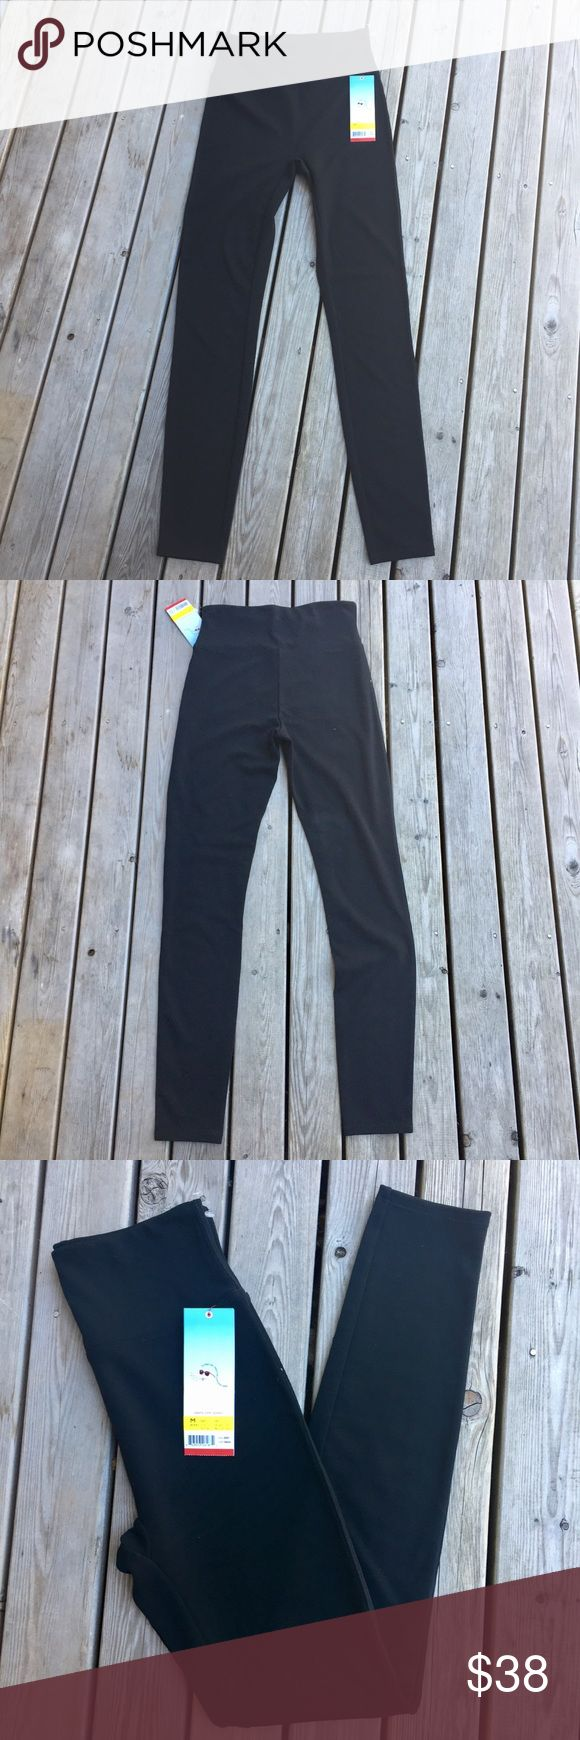 "NWT Spanx Red Hot Label Structured Leggings Blk. M NWT skinny bottom black spanx. Size Medium. Waist 31-33"" hips 38.5-40"" SPANX Pants Leggings"